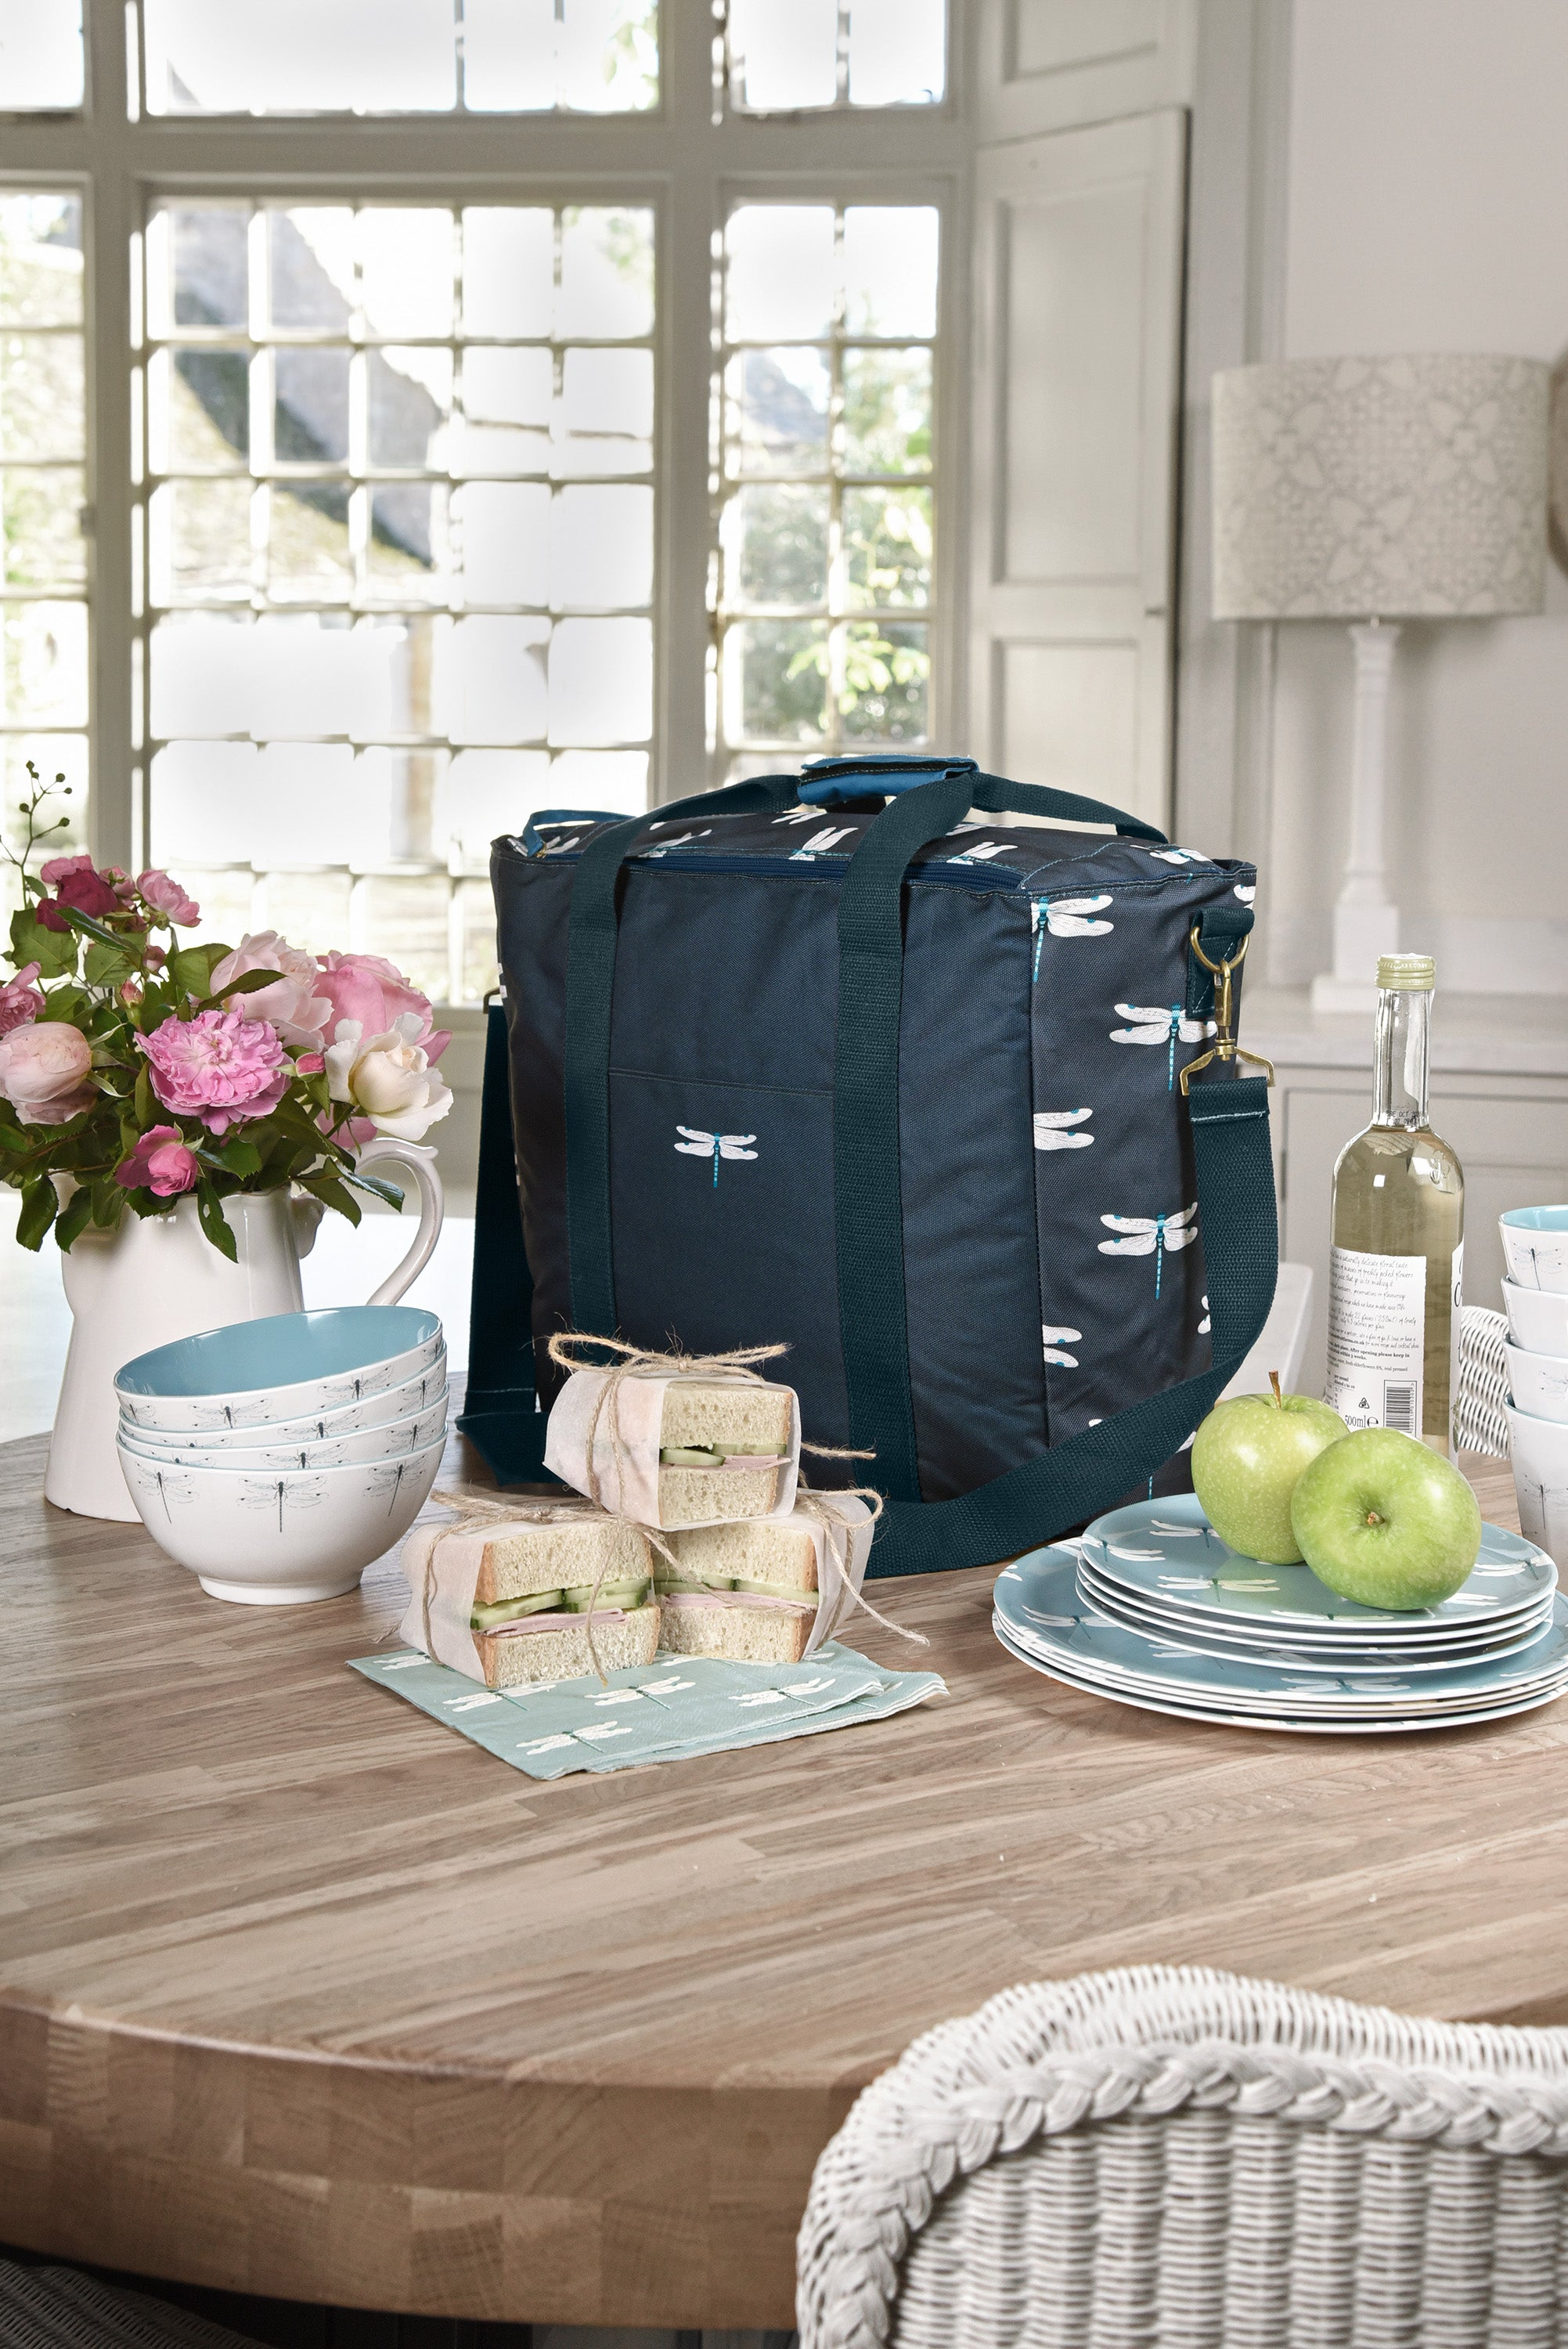 Dragonfly picnic bag by Sophie Allport